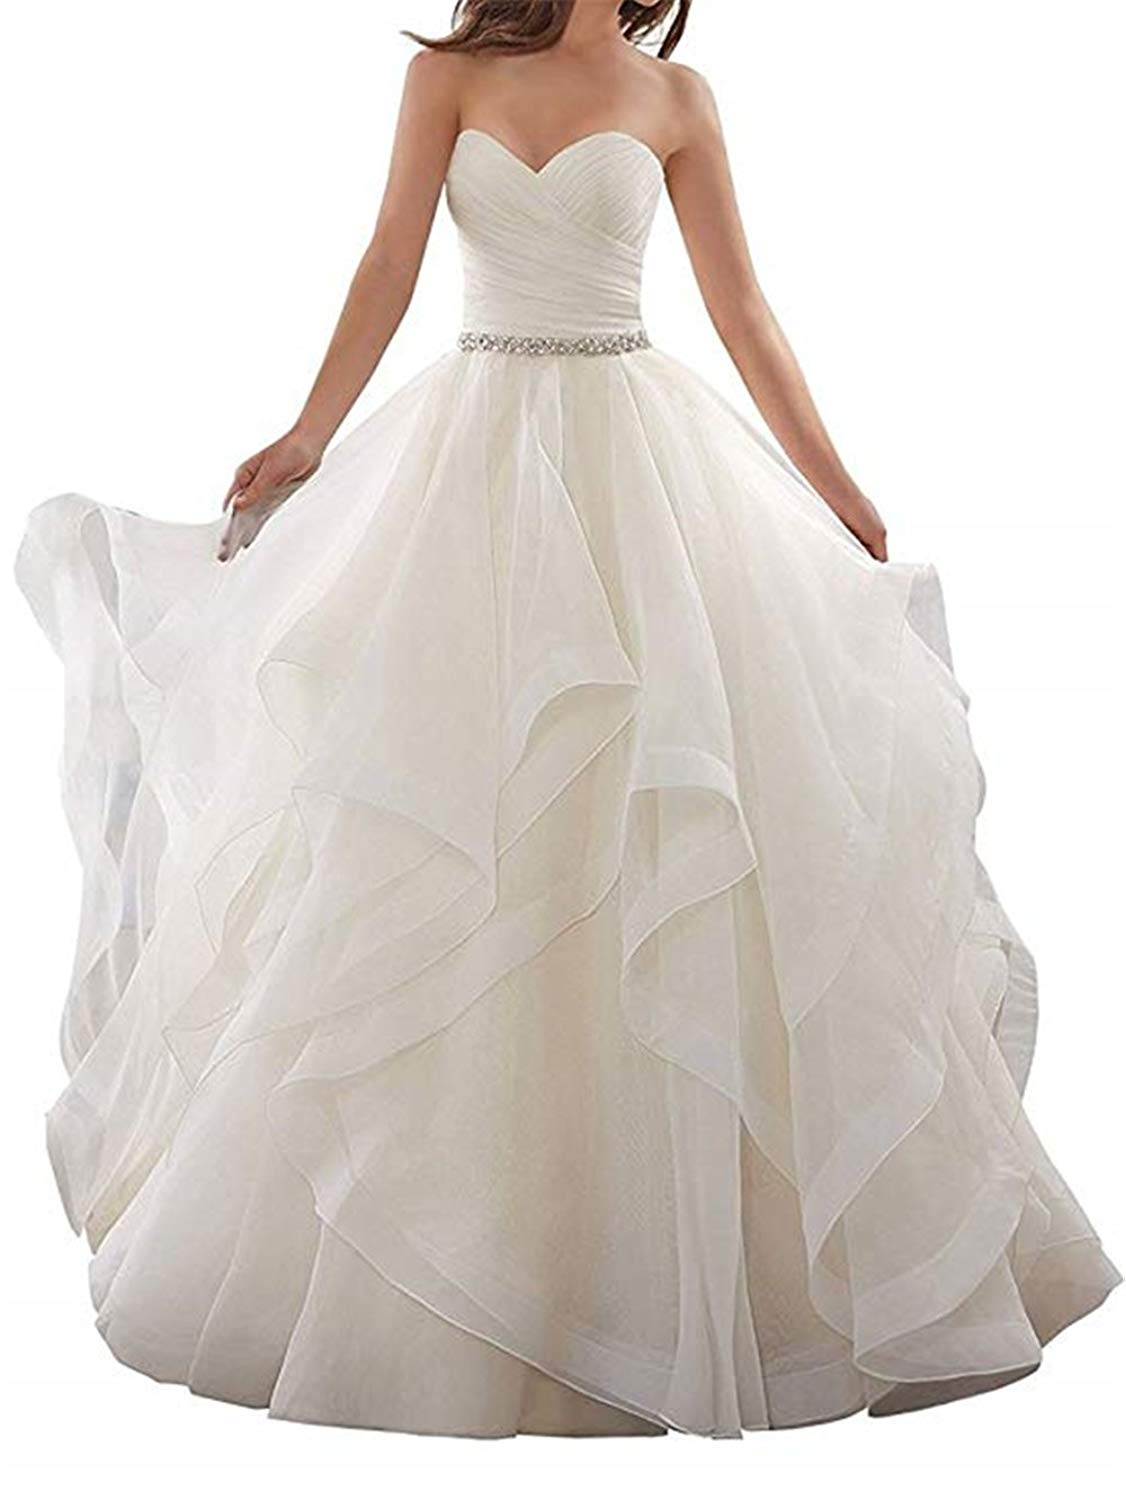 b2180c1534 Get Quotations · XGSD Women s Wedding Dress Sexy Aline Tulle Wedding Gown  Long Tail Strapless Wedding Bridal Gowns Plus